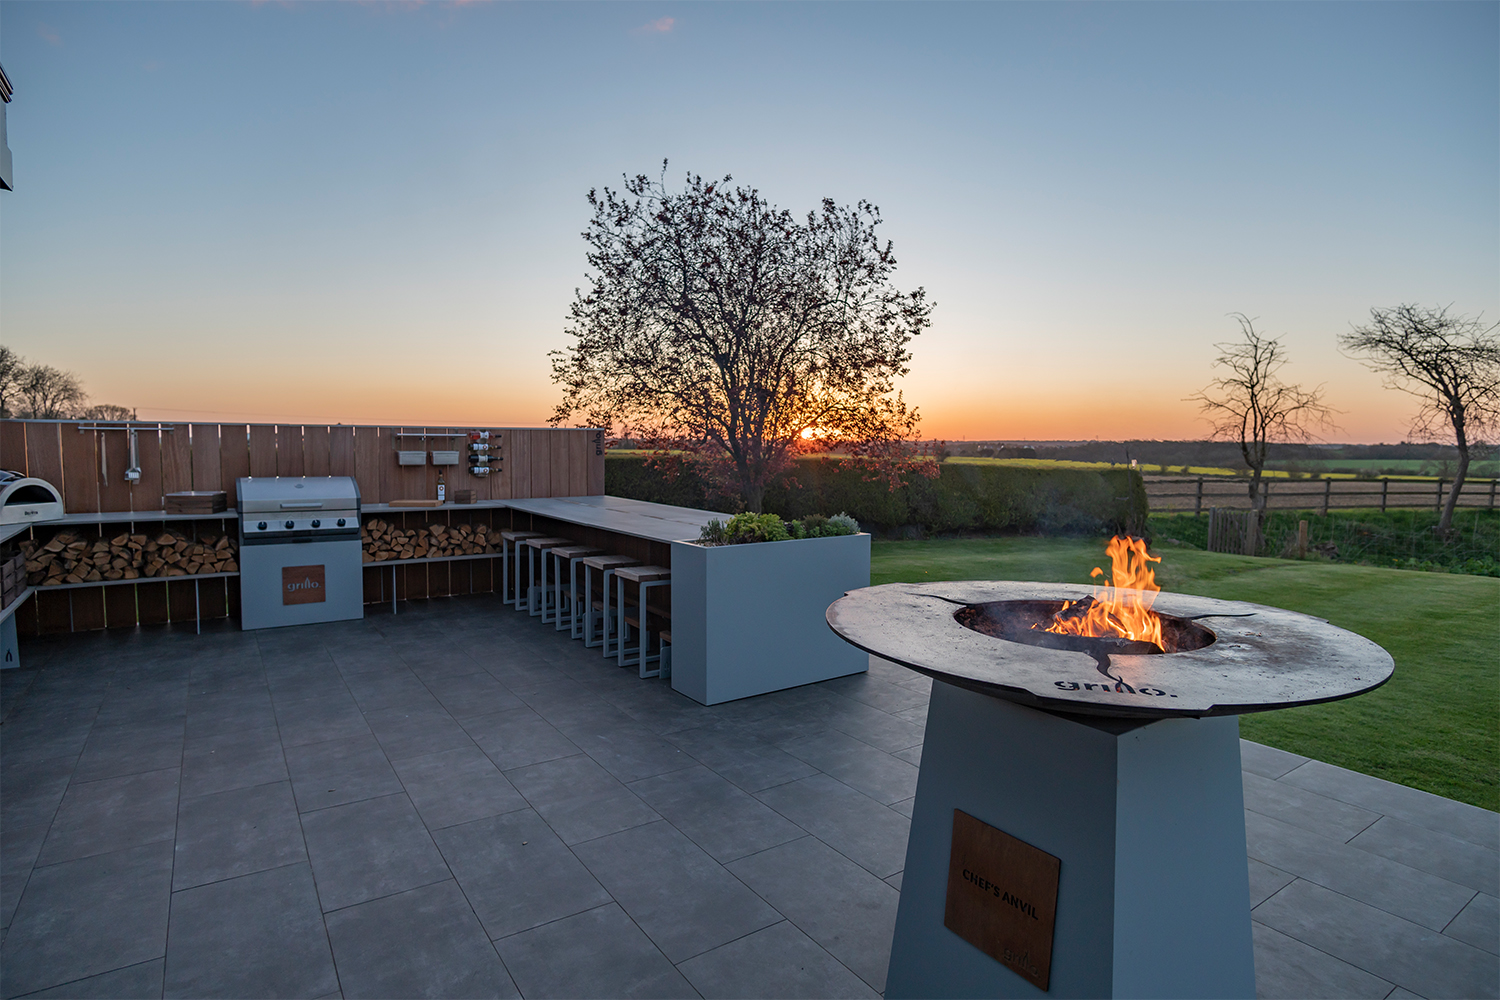 Grillo U shape kitchen with anvil lit, bar seating, planters, Delivita pizza oven, Cadac grill sunset in background